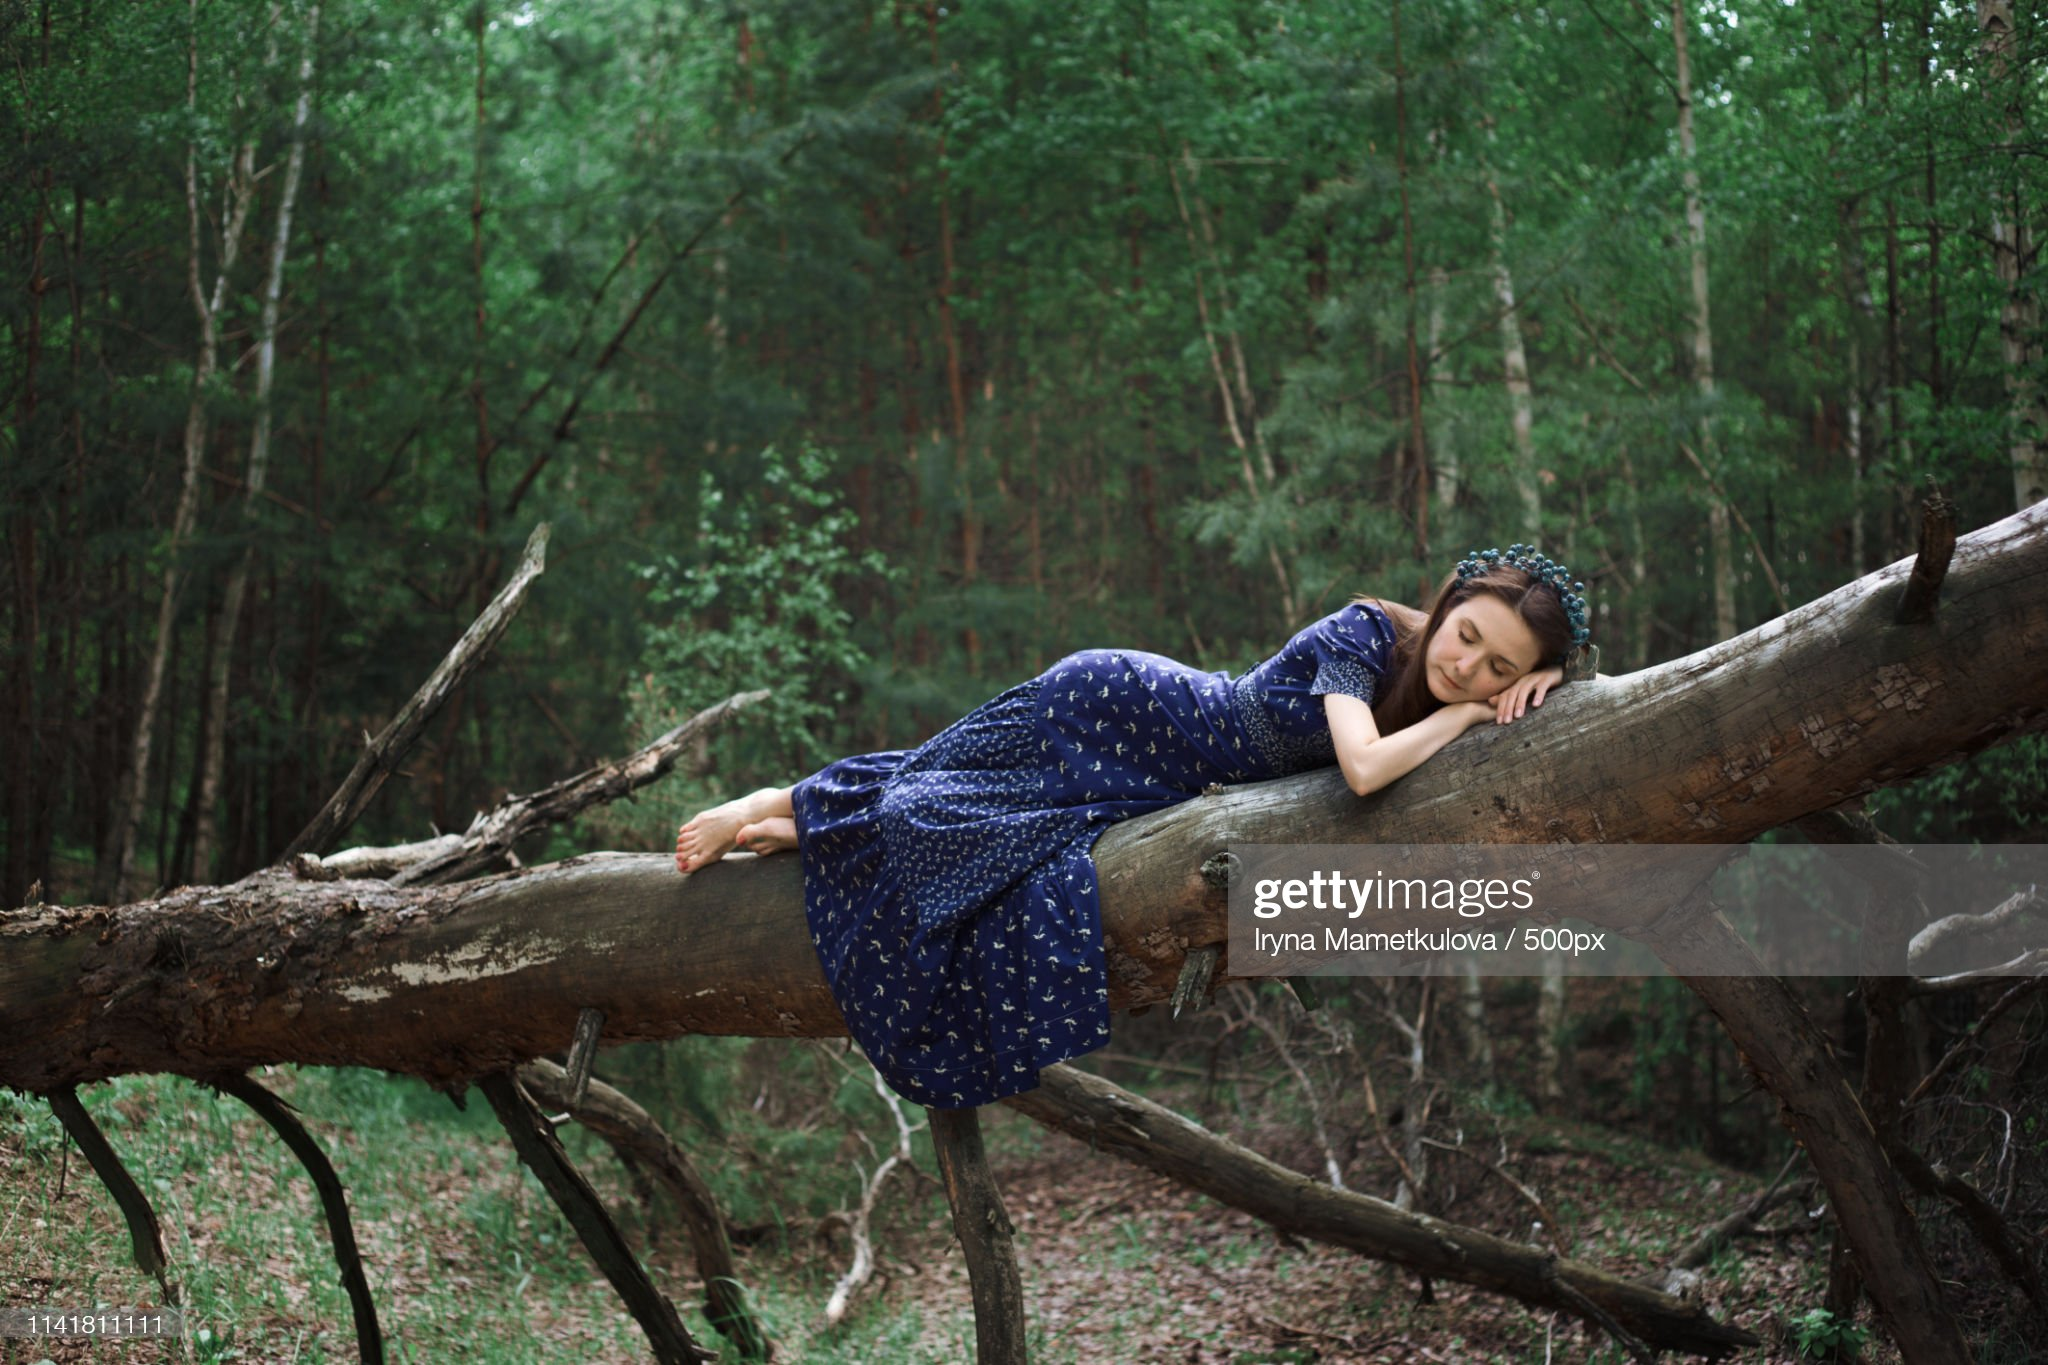 https://media.gettyimages.com/photos/portrait-of-woman-lying-on-tree-picture-id1141811111?s=2048x2048